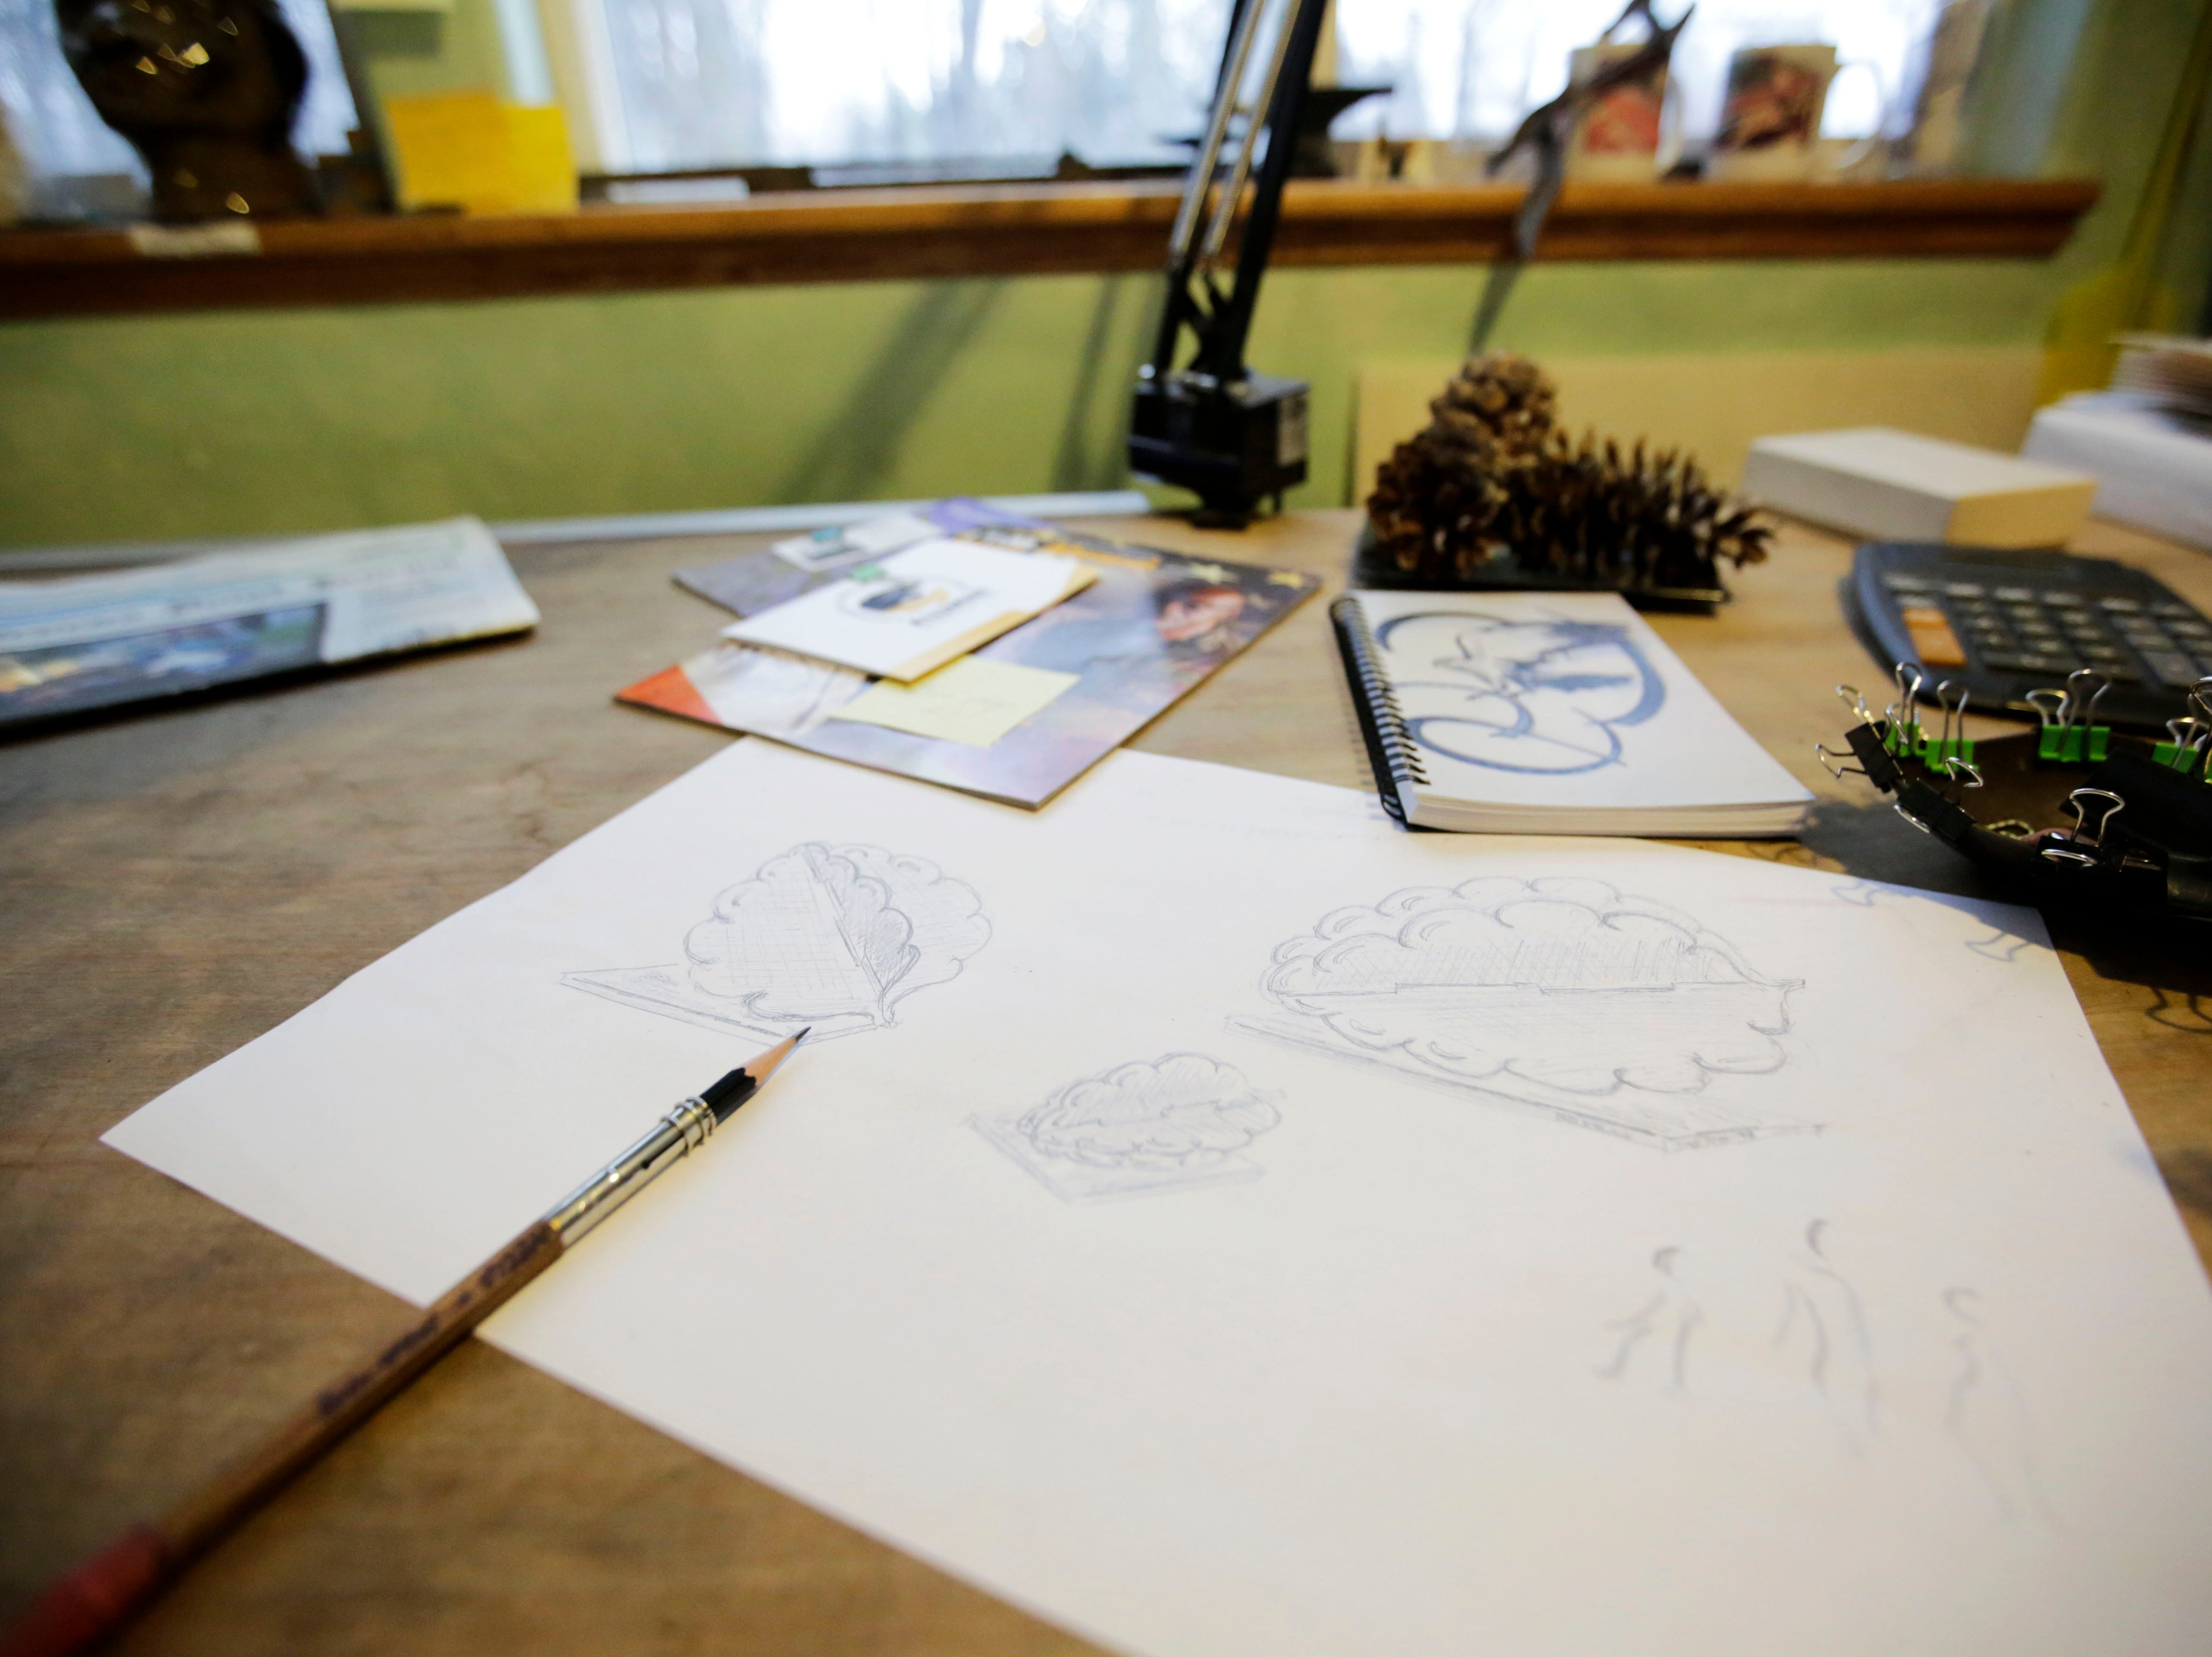 Sketches of pine cone sculptures lie on Boleslaw Kochanowski's work bench on Wednesday, December 5, 2018, at his workshop in Junction City, Wis. The sculptures, inspired by the Polish art form of Wycinanki, will eventually be installed near the roundabout at the intersection of Division Street and North Point Drive. Tork Mason/USA Today NETWORK-Wisconsin